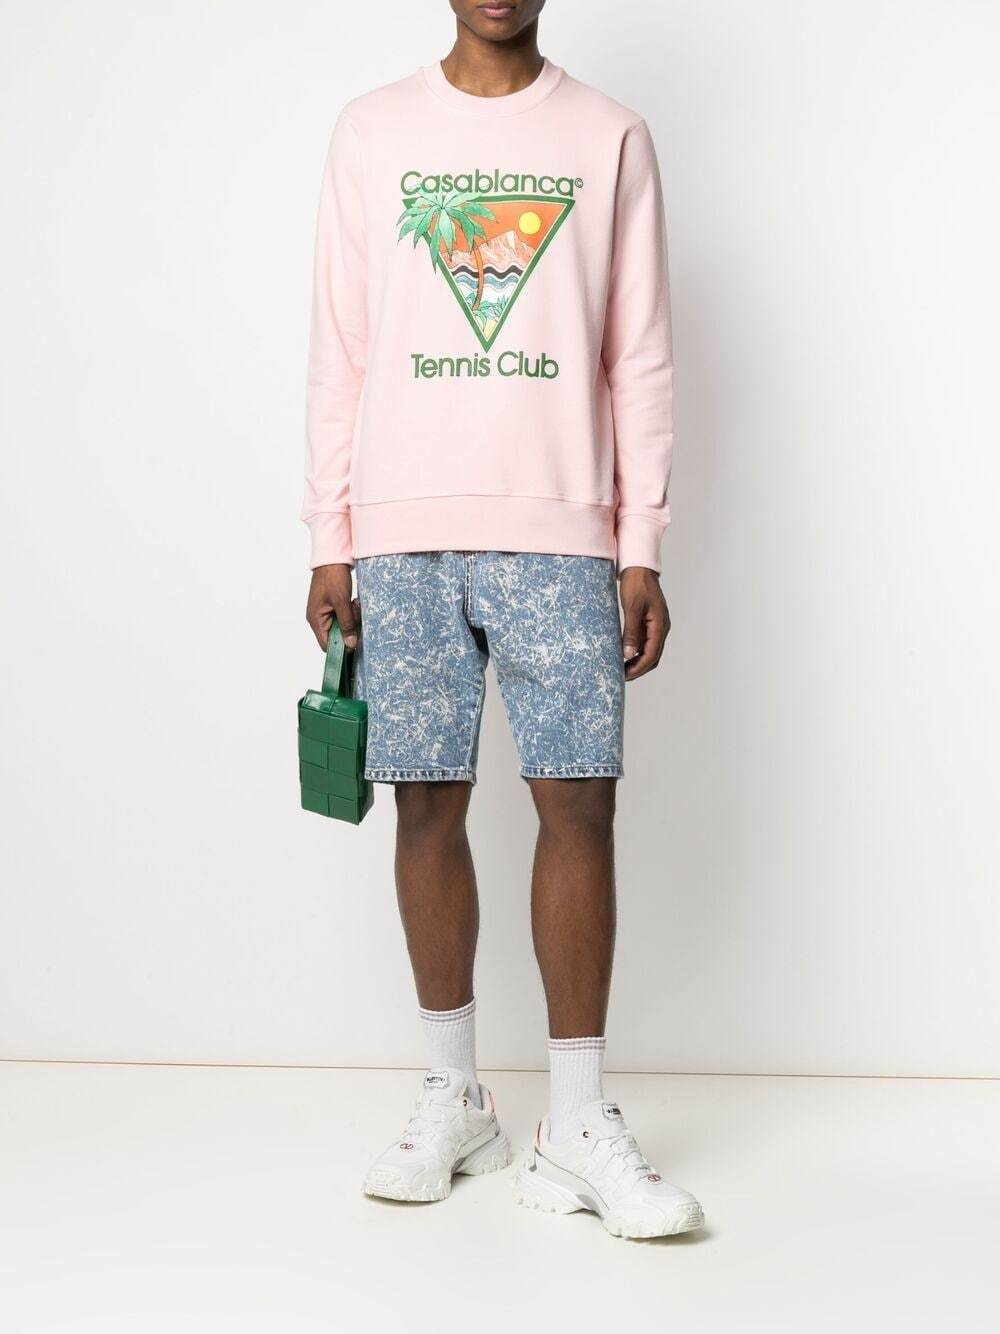 CASABLANCA Tennis Club Print Sweatshirt Pink